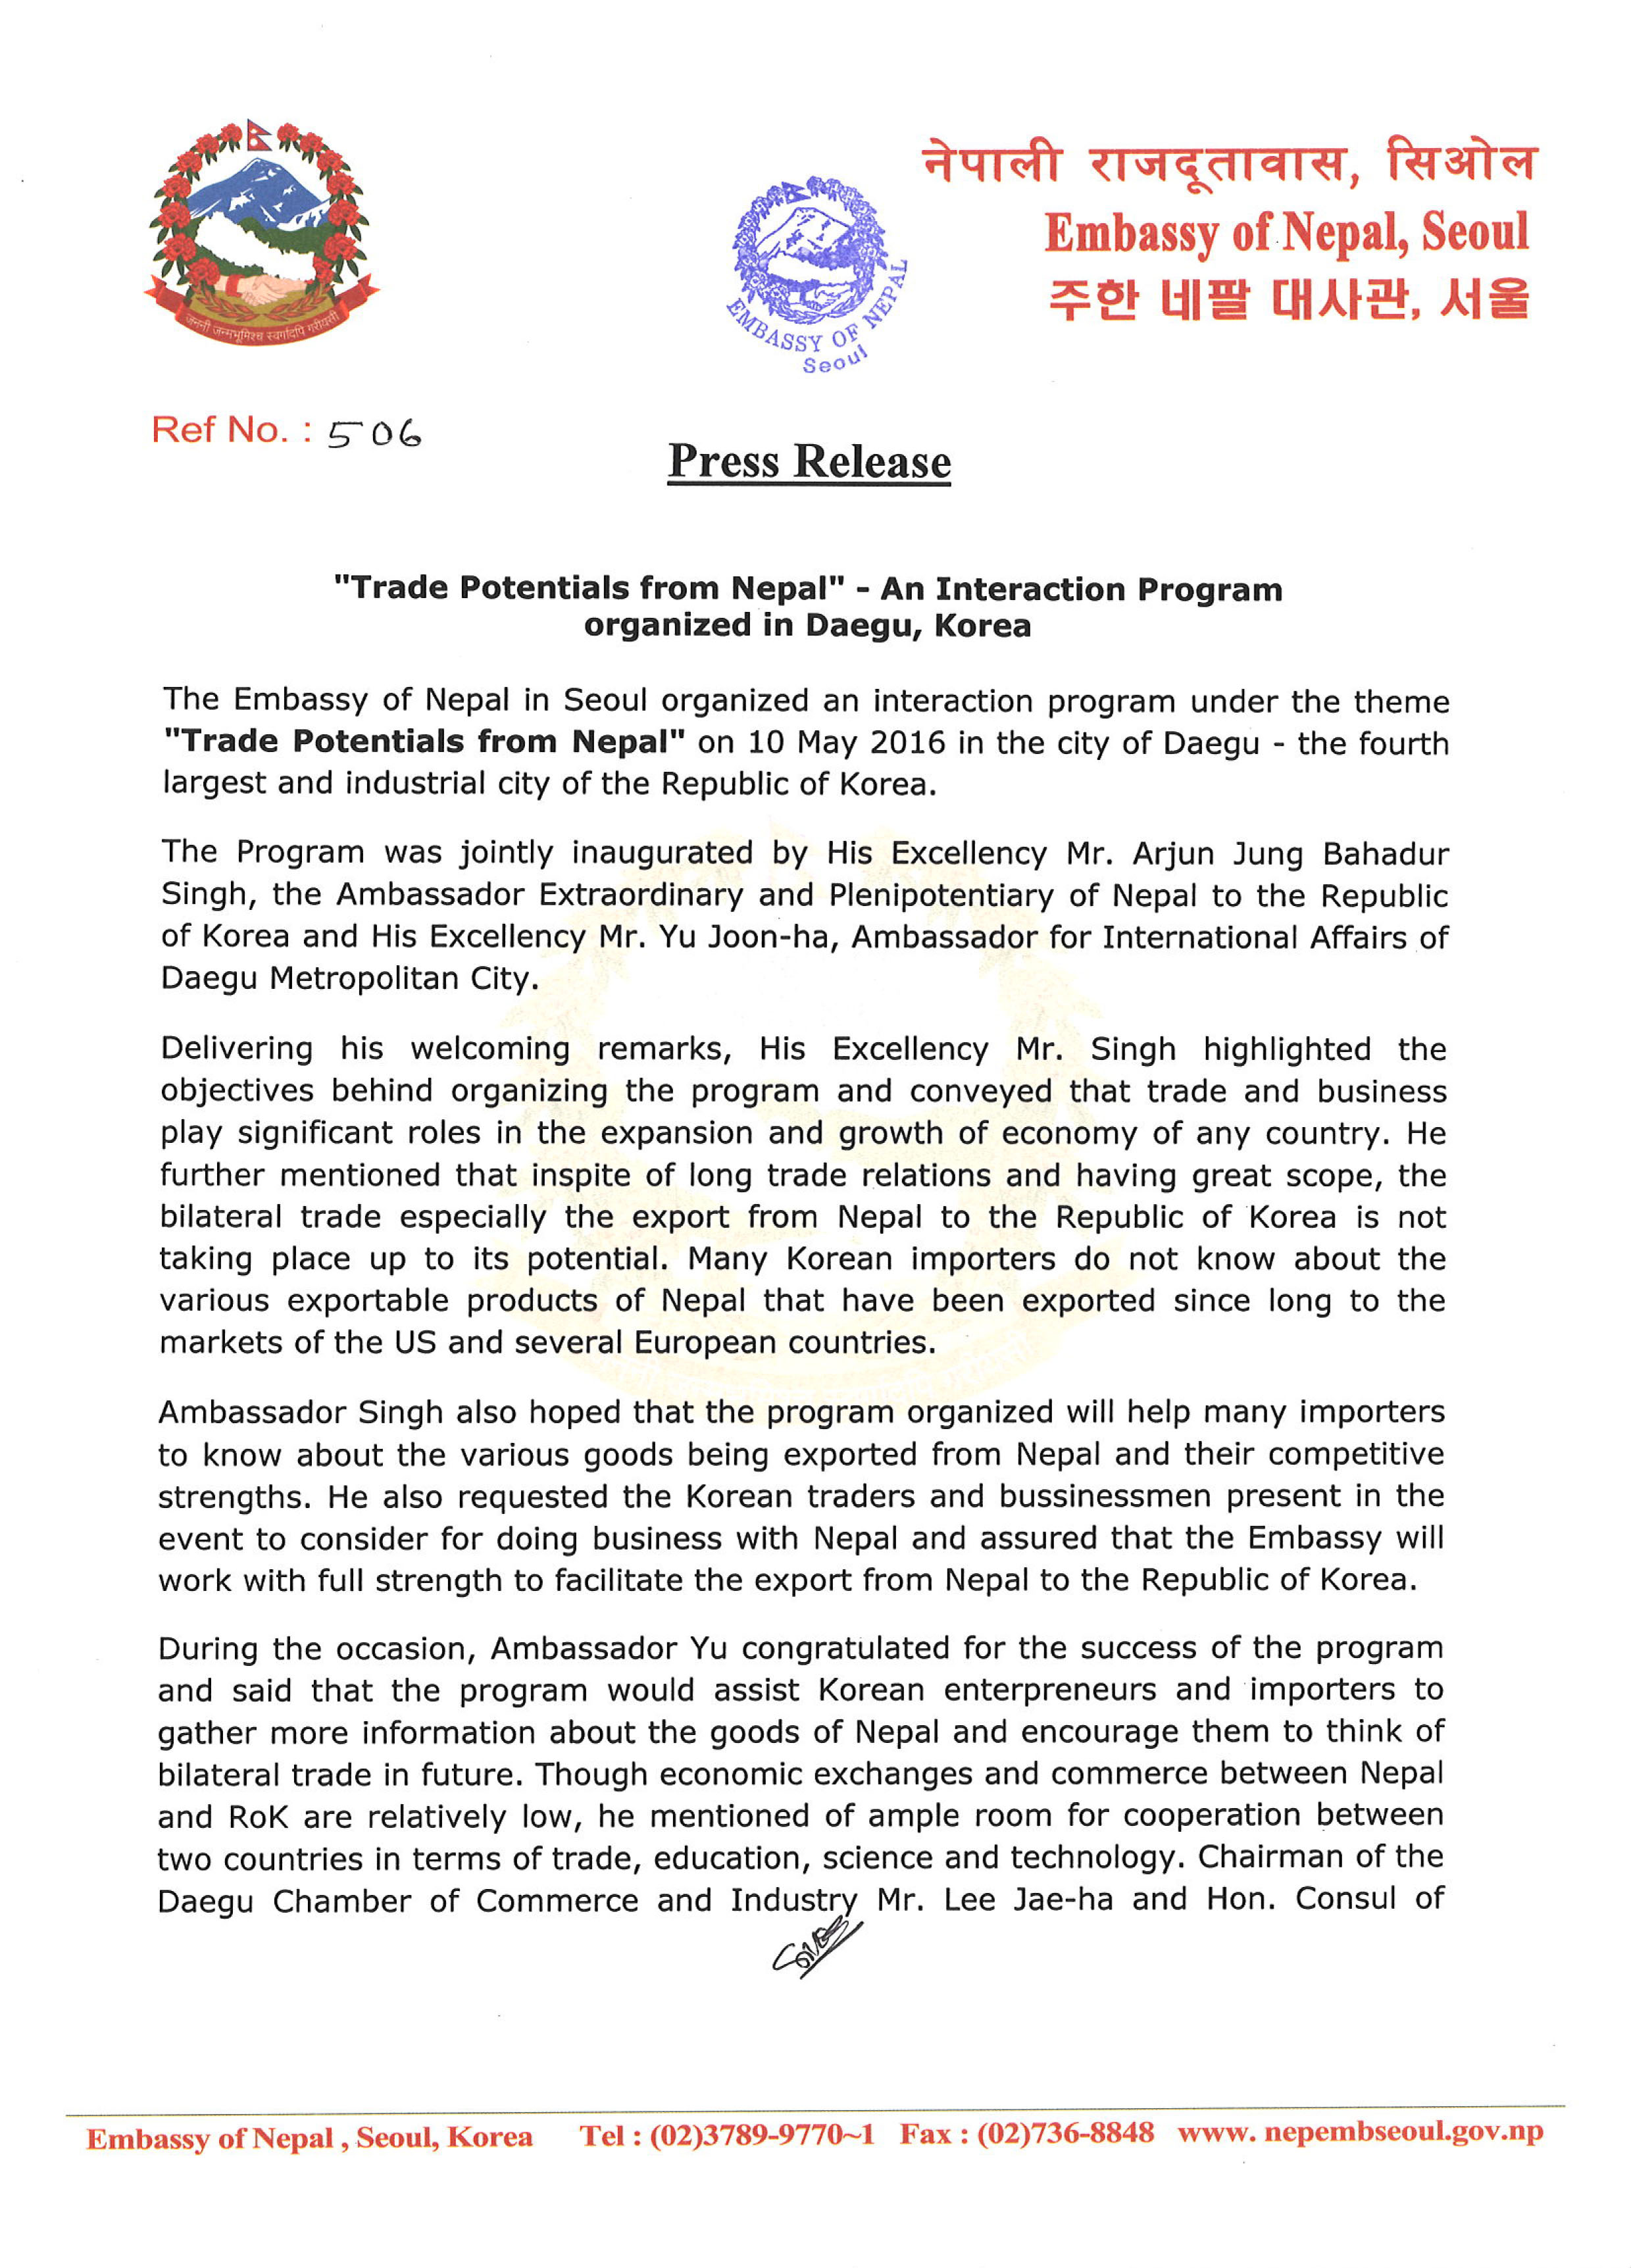 Press Release on Trade Potentials from Nepal - Embassy of Nepal